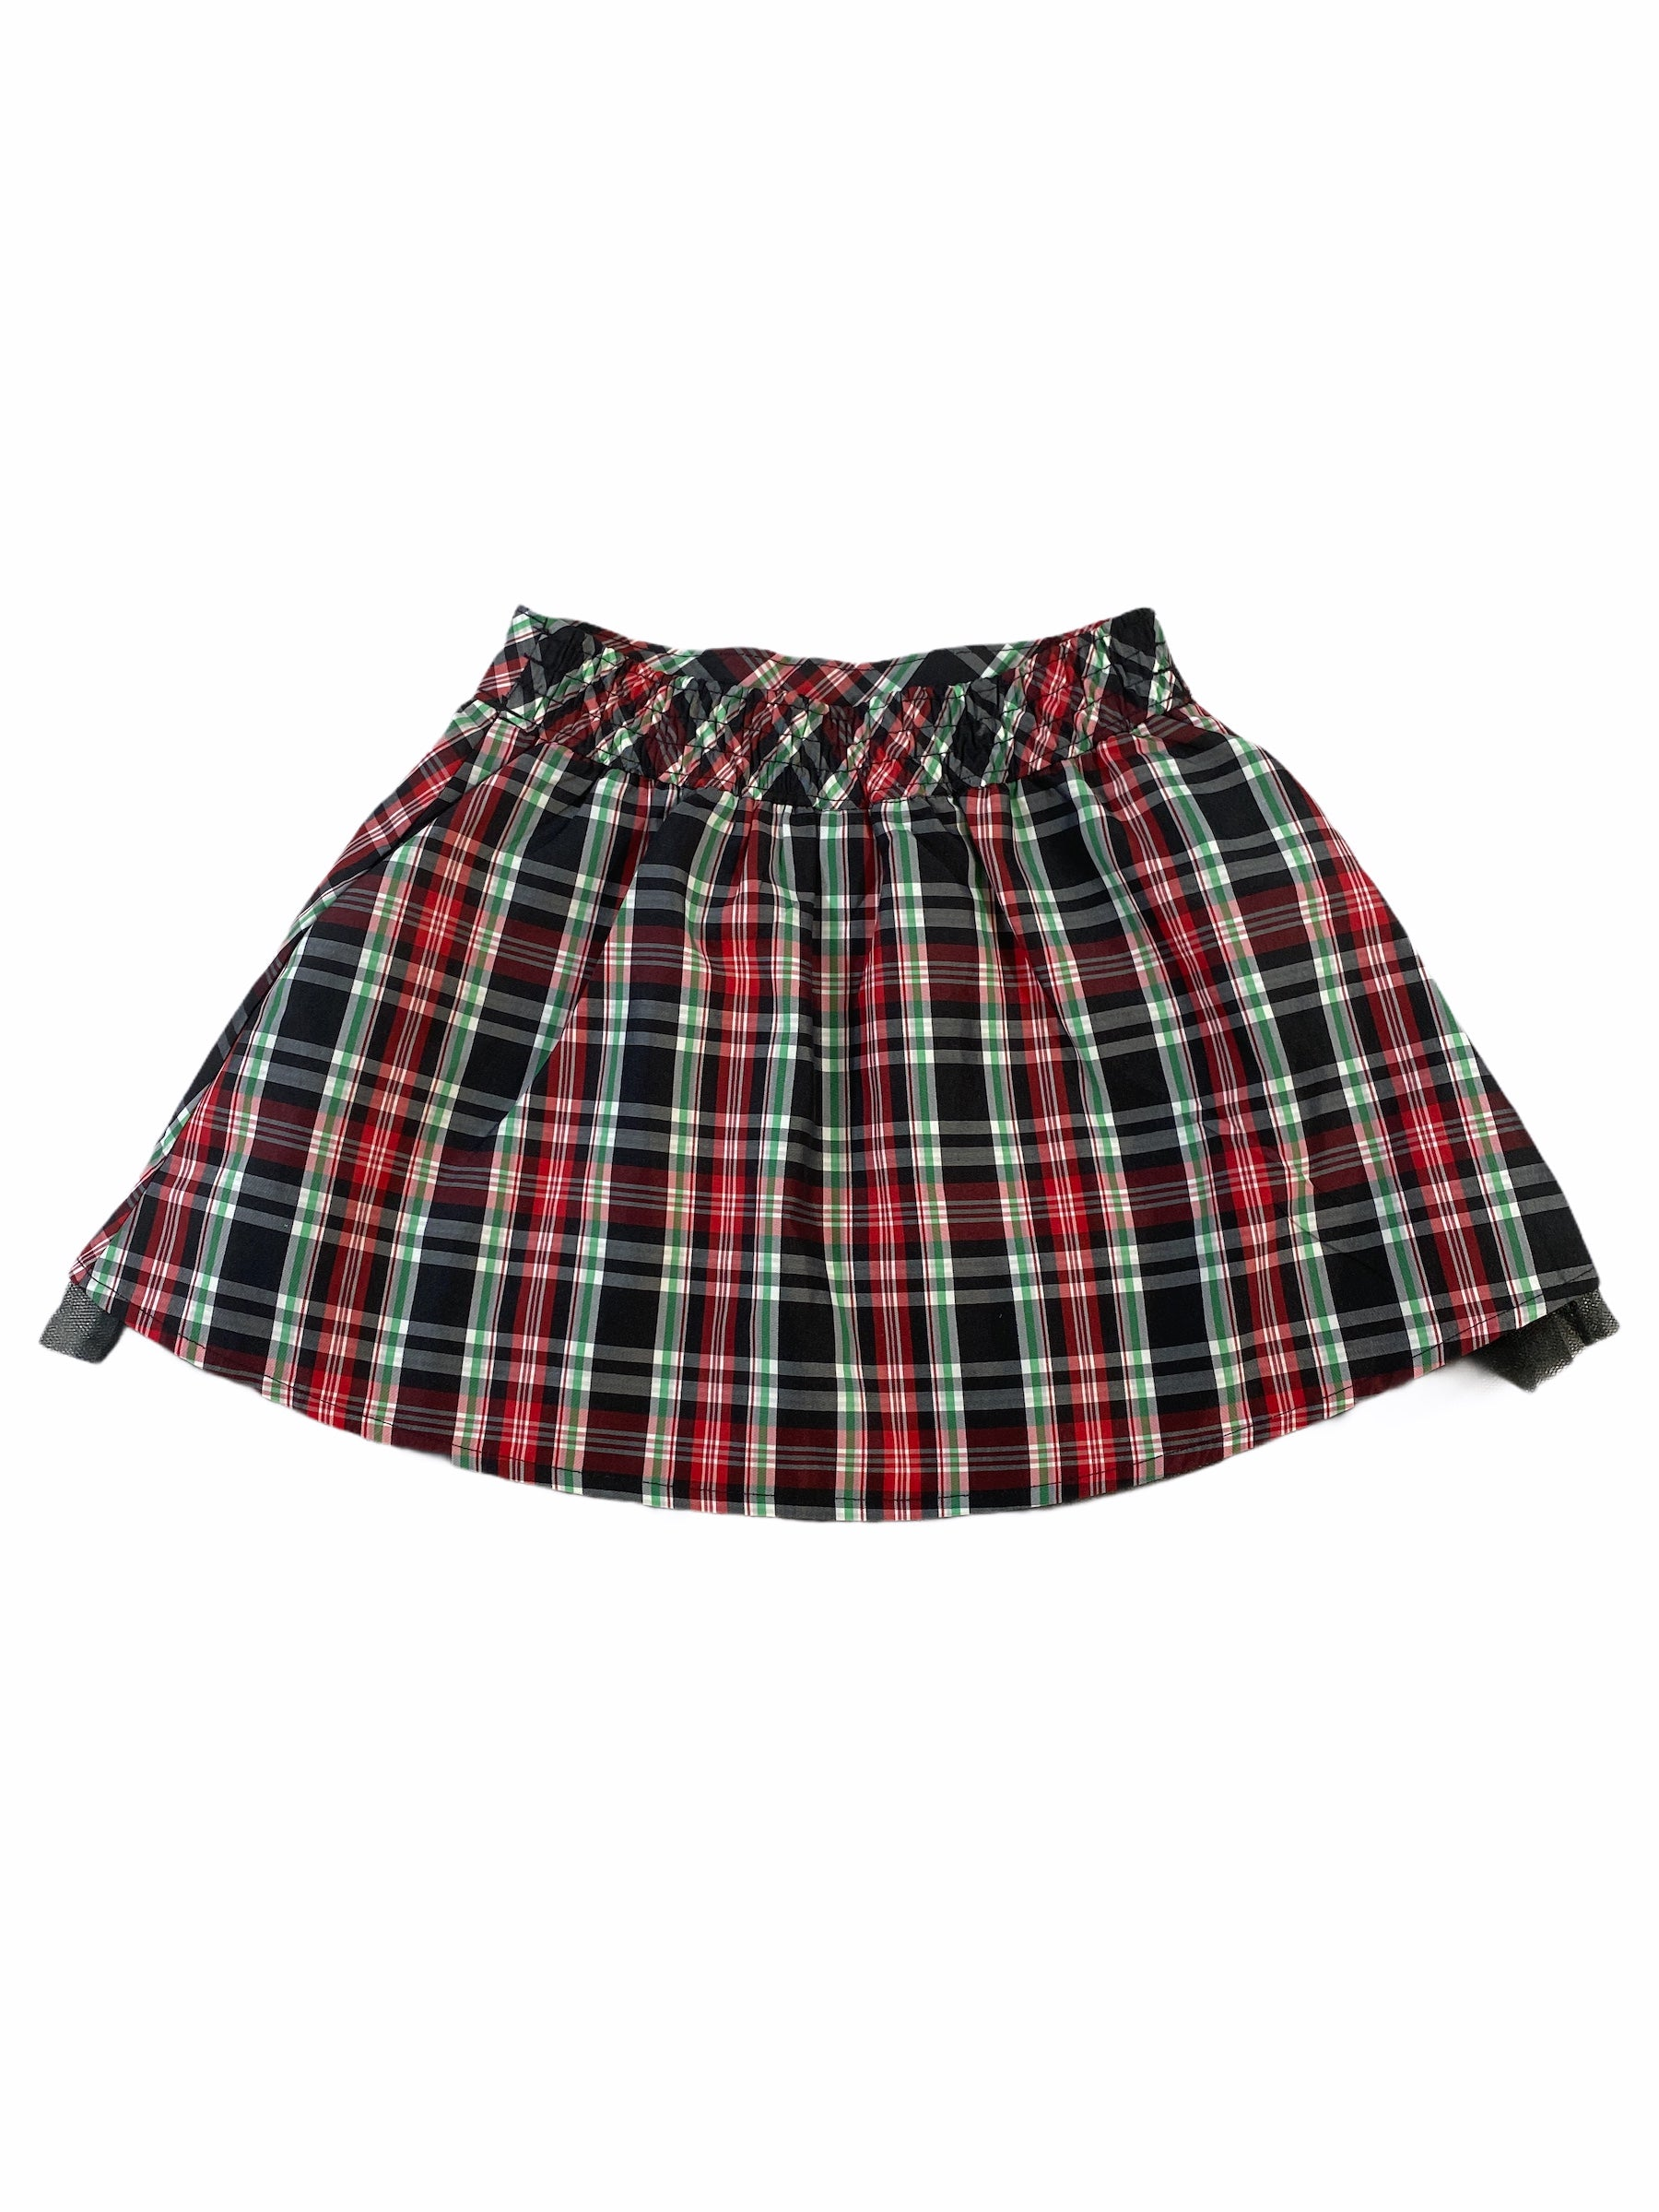 OshKosh Red plaid Skirt (4T Girls)